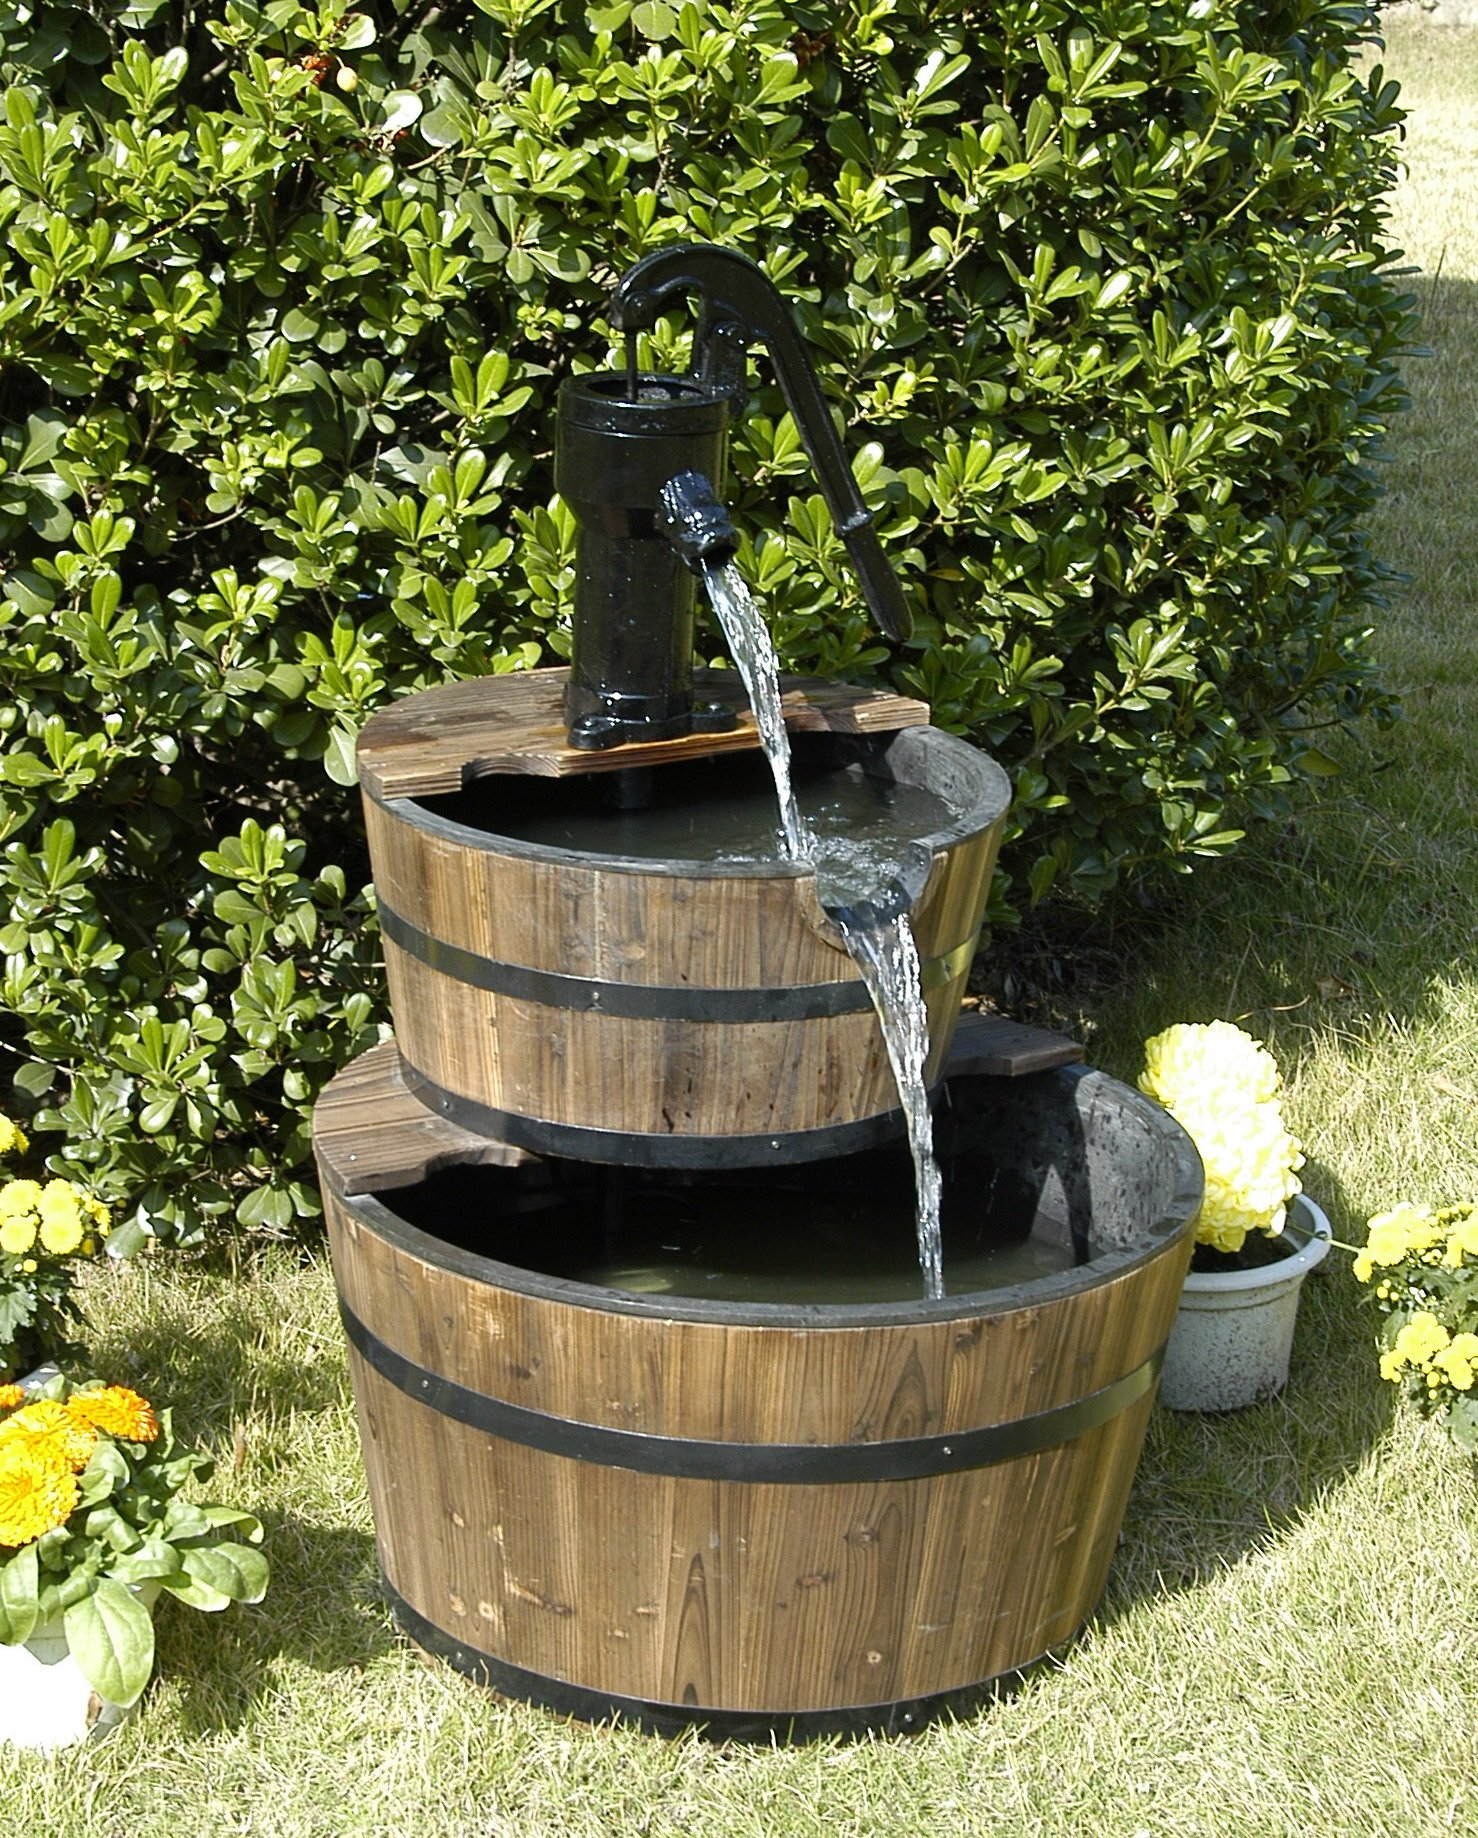 Wood Barrel with Pump Outdoor Water Fountain - Large Garden Water Fountain Product SKU: PL50001 by PSW - Water Fountains